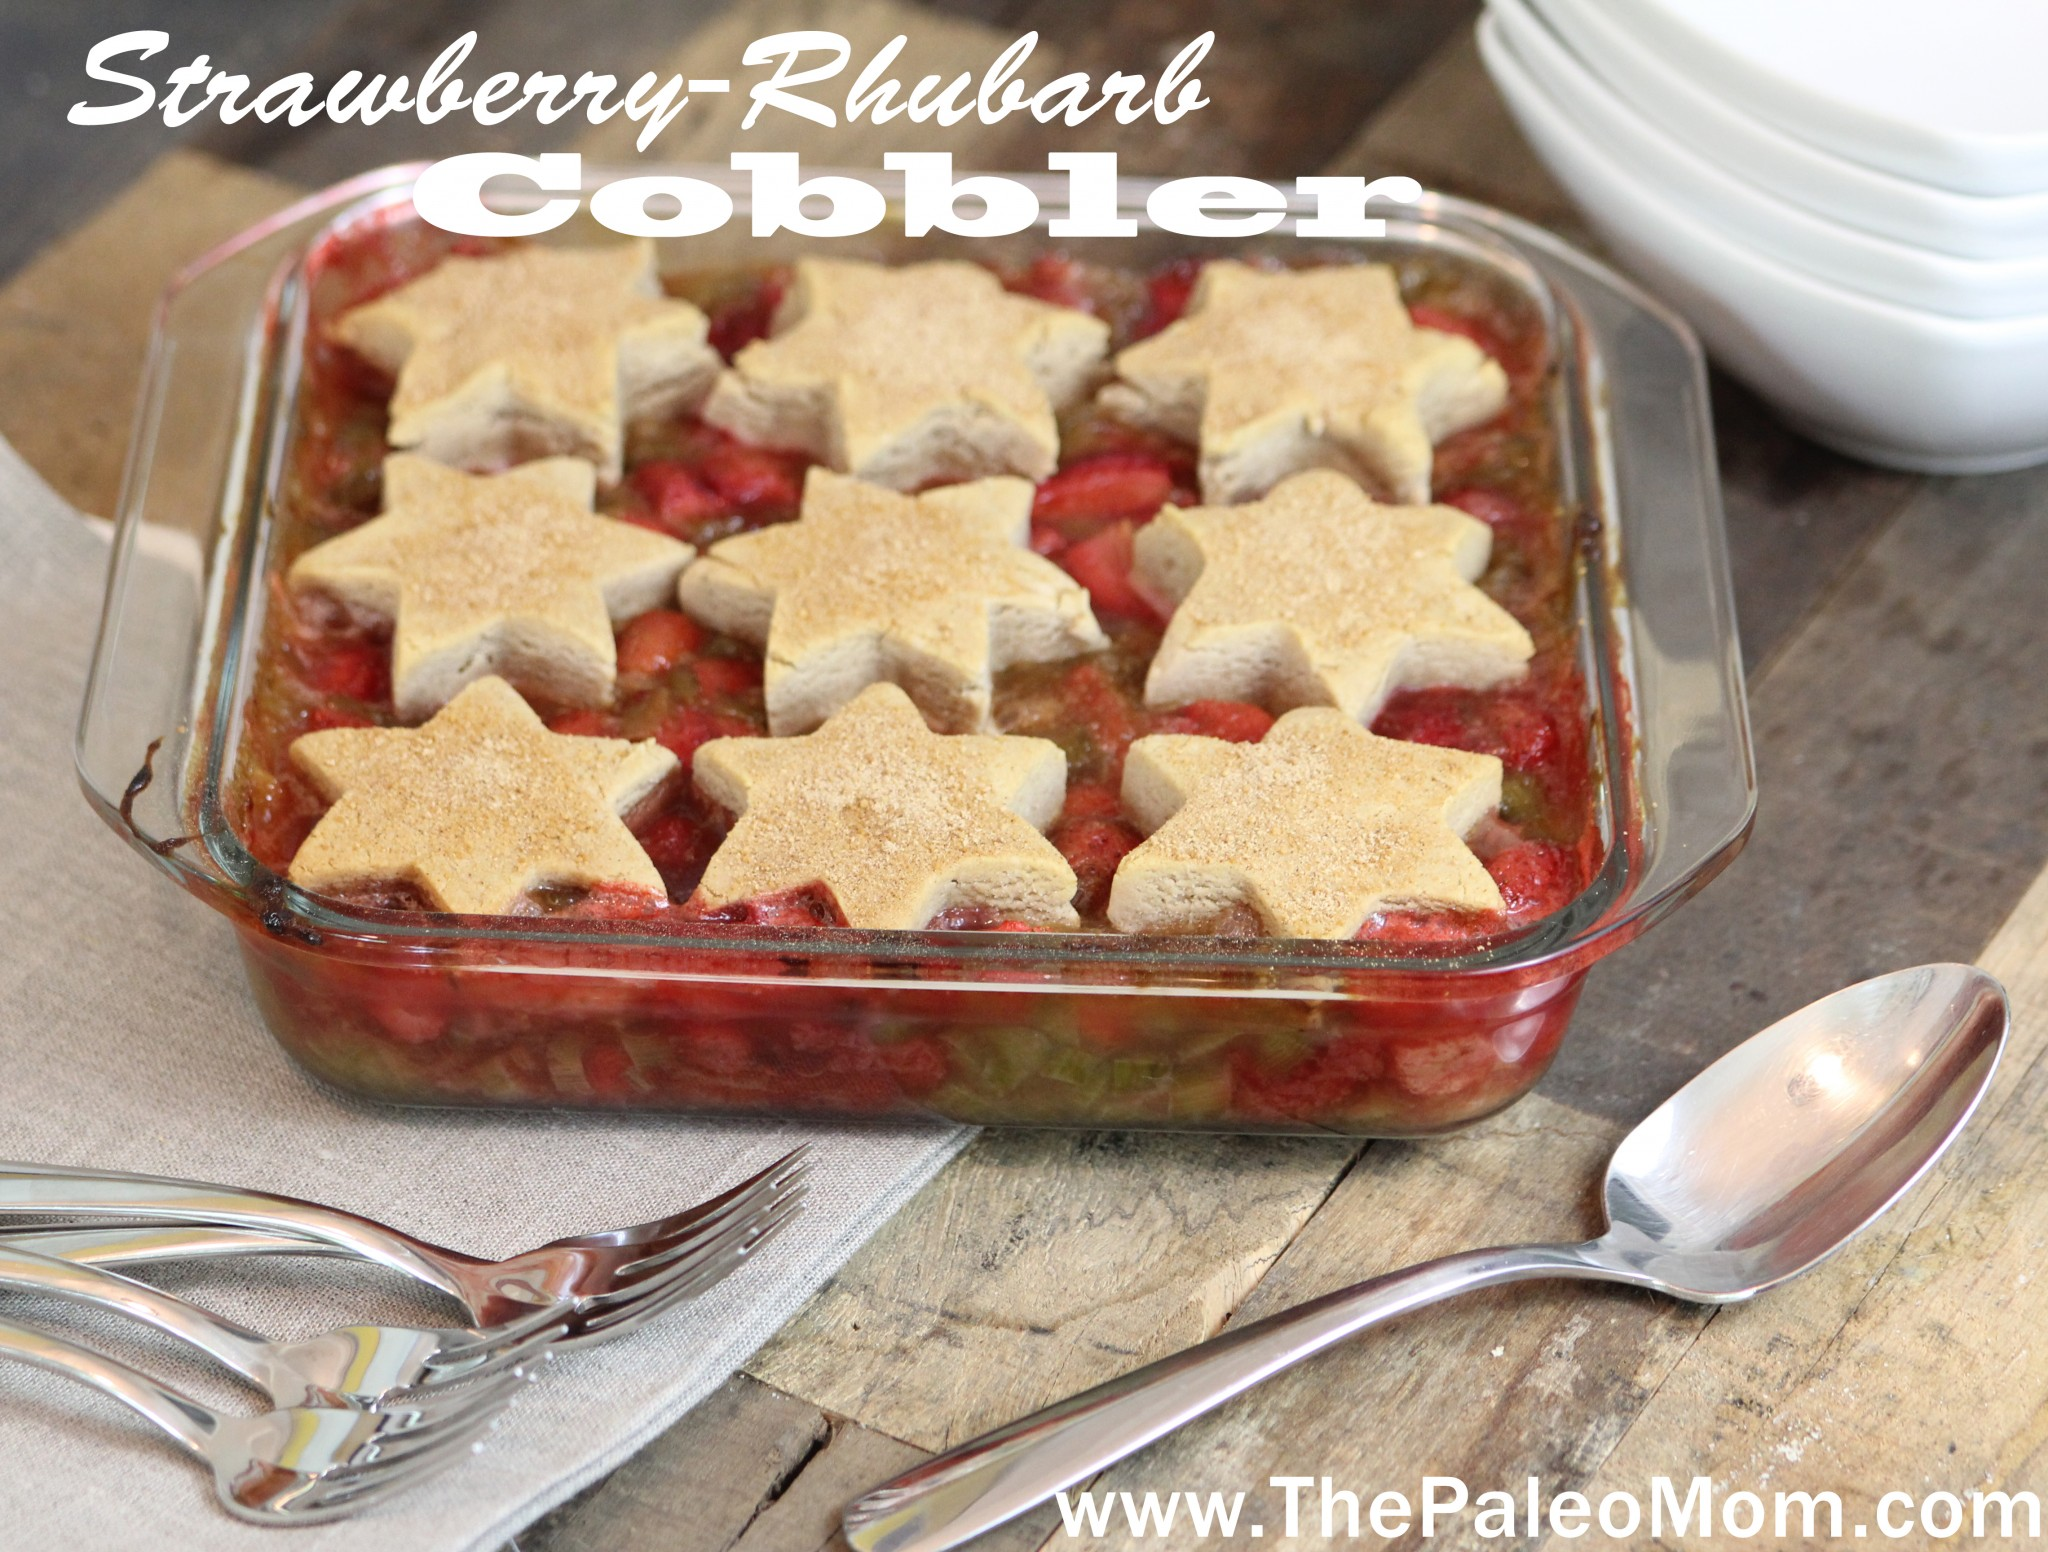 Strawberry-Rhubarb Cobbler 1